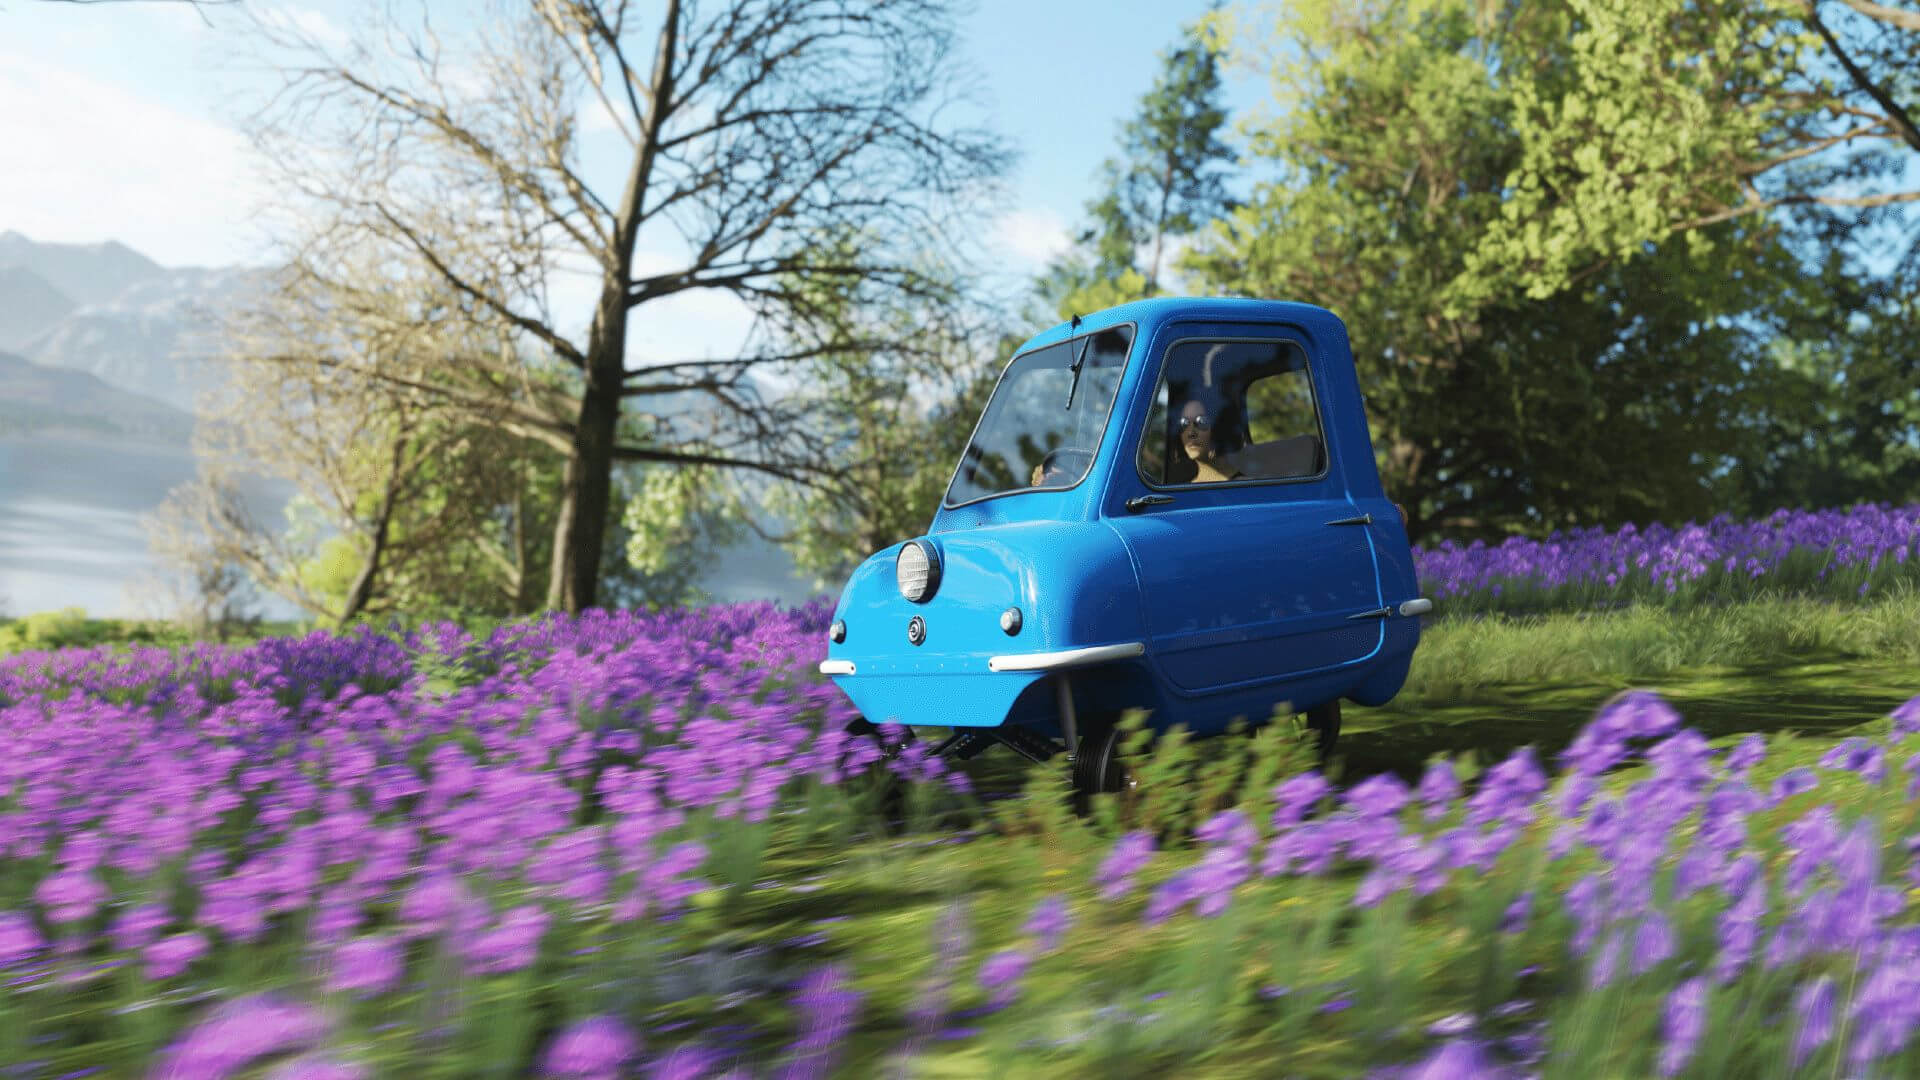 The dumbest cars in Forza Horizon 4 | PC Gamer